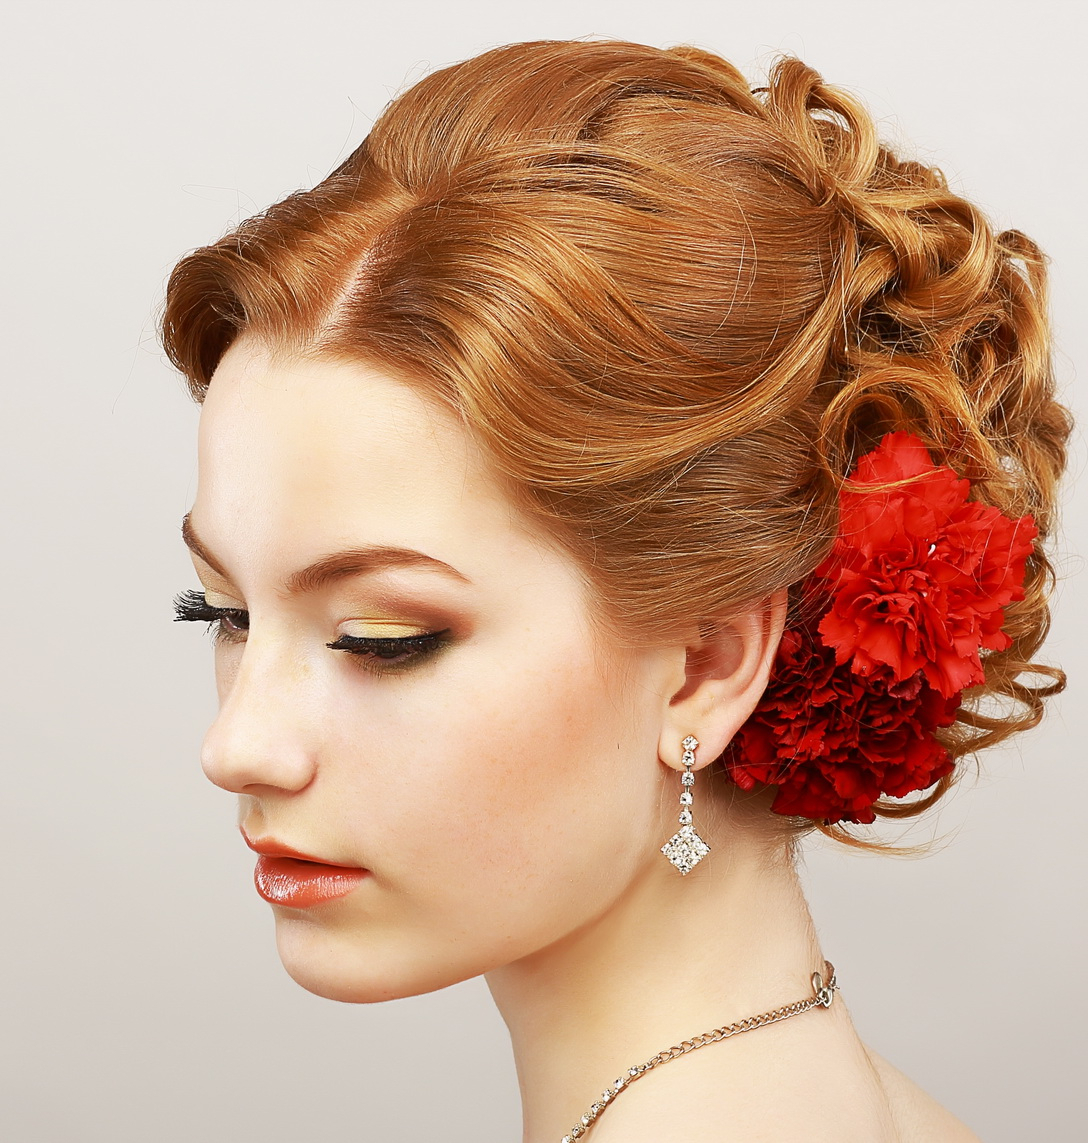 16 Easy Prom Hairstyles For Short And Medium Length Hair For Most Popular Tousled Asymmetrical Updo Wedding Hairstyles (View 1 of 20)